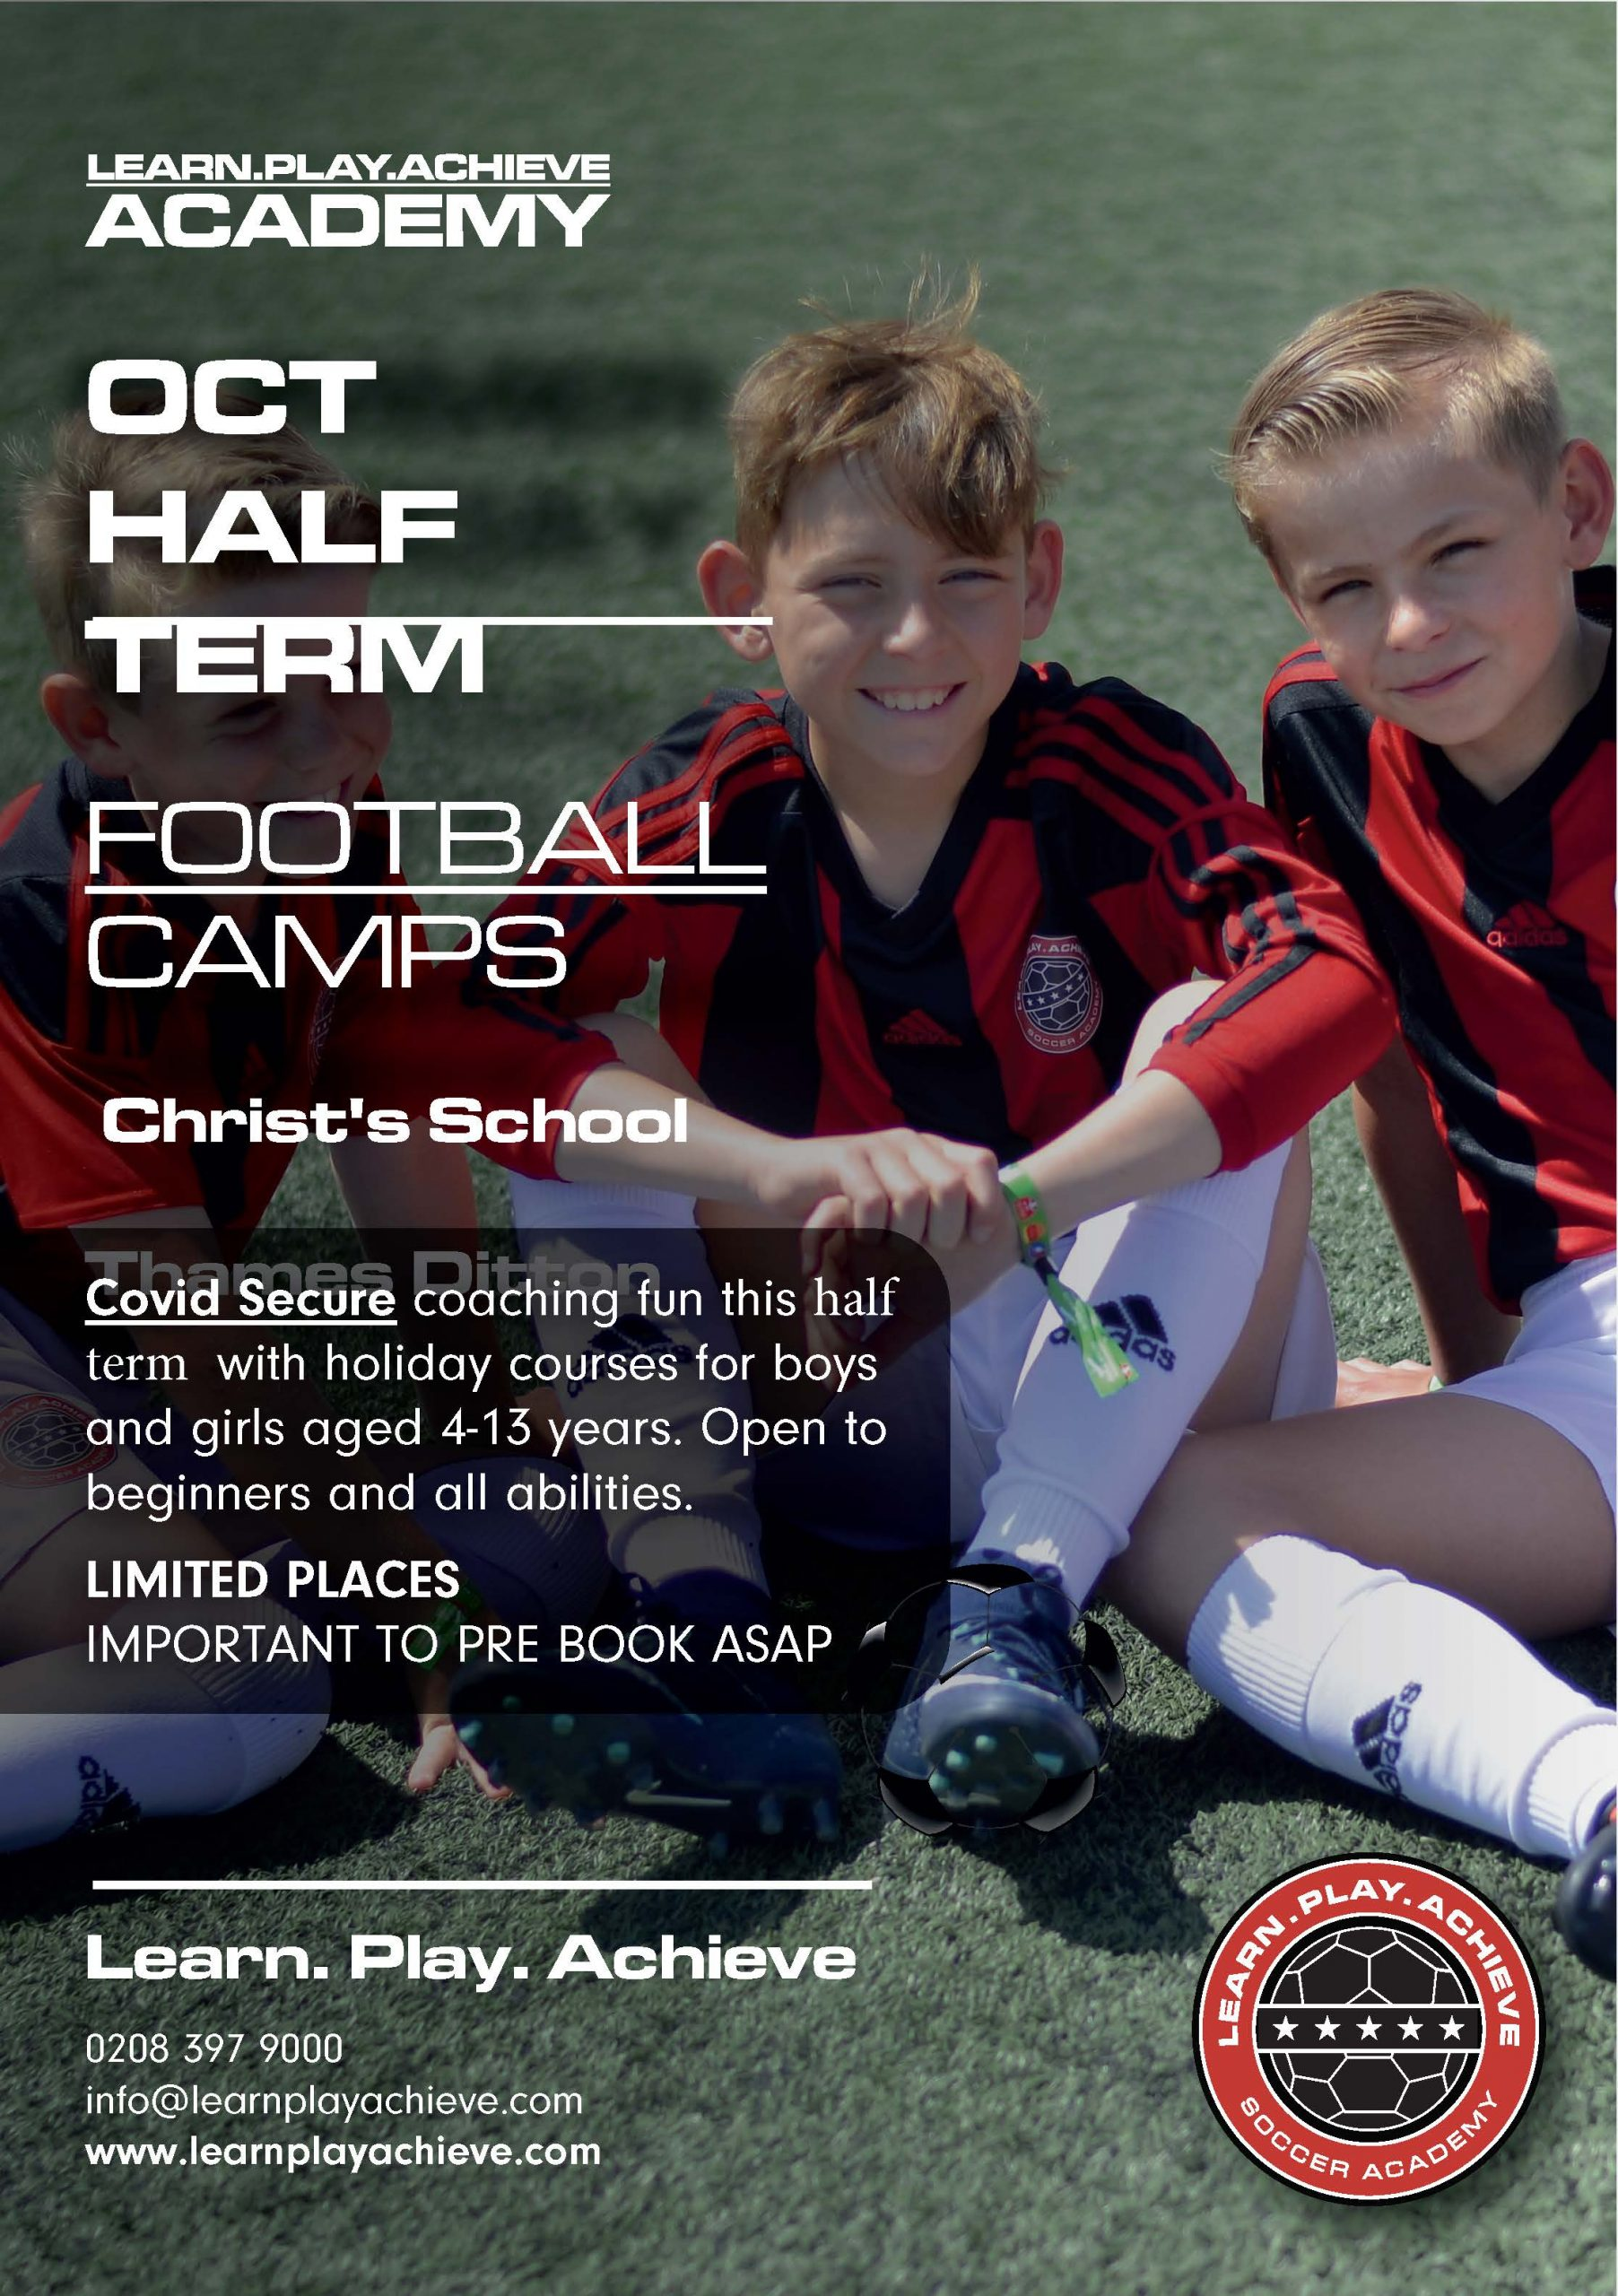 https://www.learnplayachieve.com/wp-content/uploads/2020/10/Christs-School-Oct-Half-Term-Holiday-Camp_Page_1-scaled.jpg